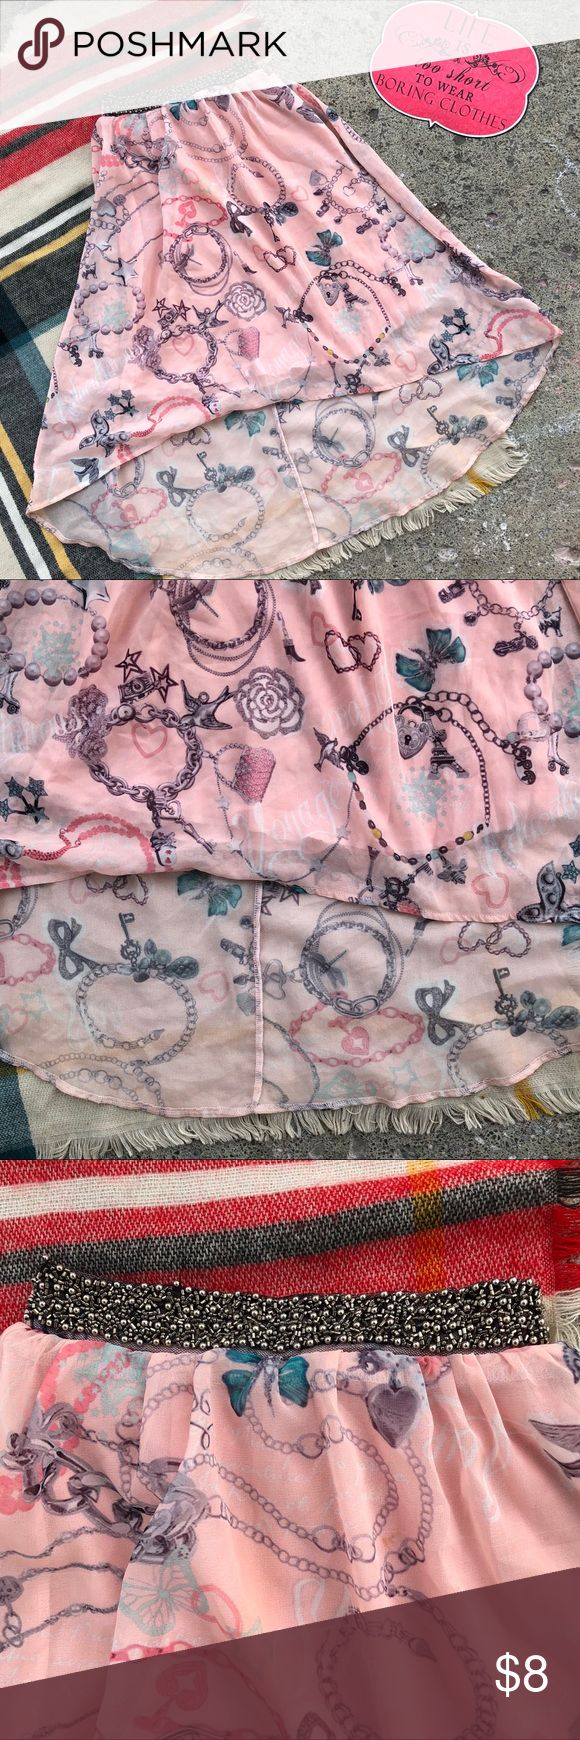 Sheer Paris Skirt with lining and high/low hem A pretty Paris themed skirt with elastic in the waist and a high/low hem. It has a sparkly belt attached to the front waistband. So feminine and beautiful! In good, second-hand condition! ü Bottoms Skirts